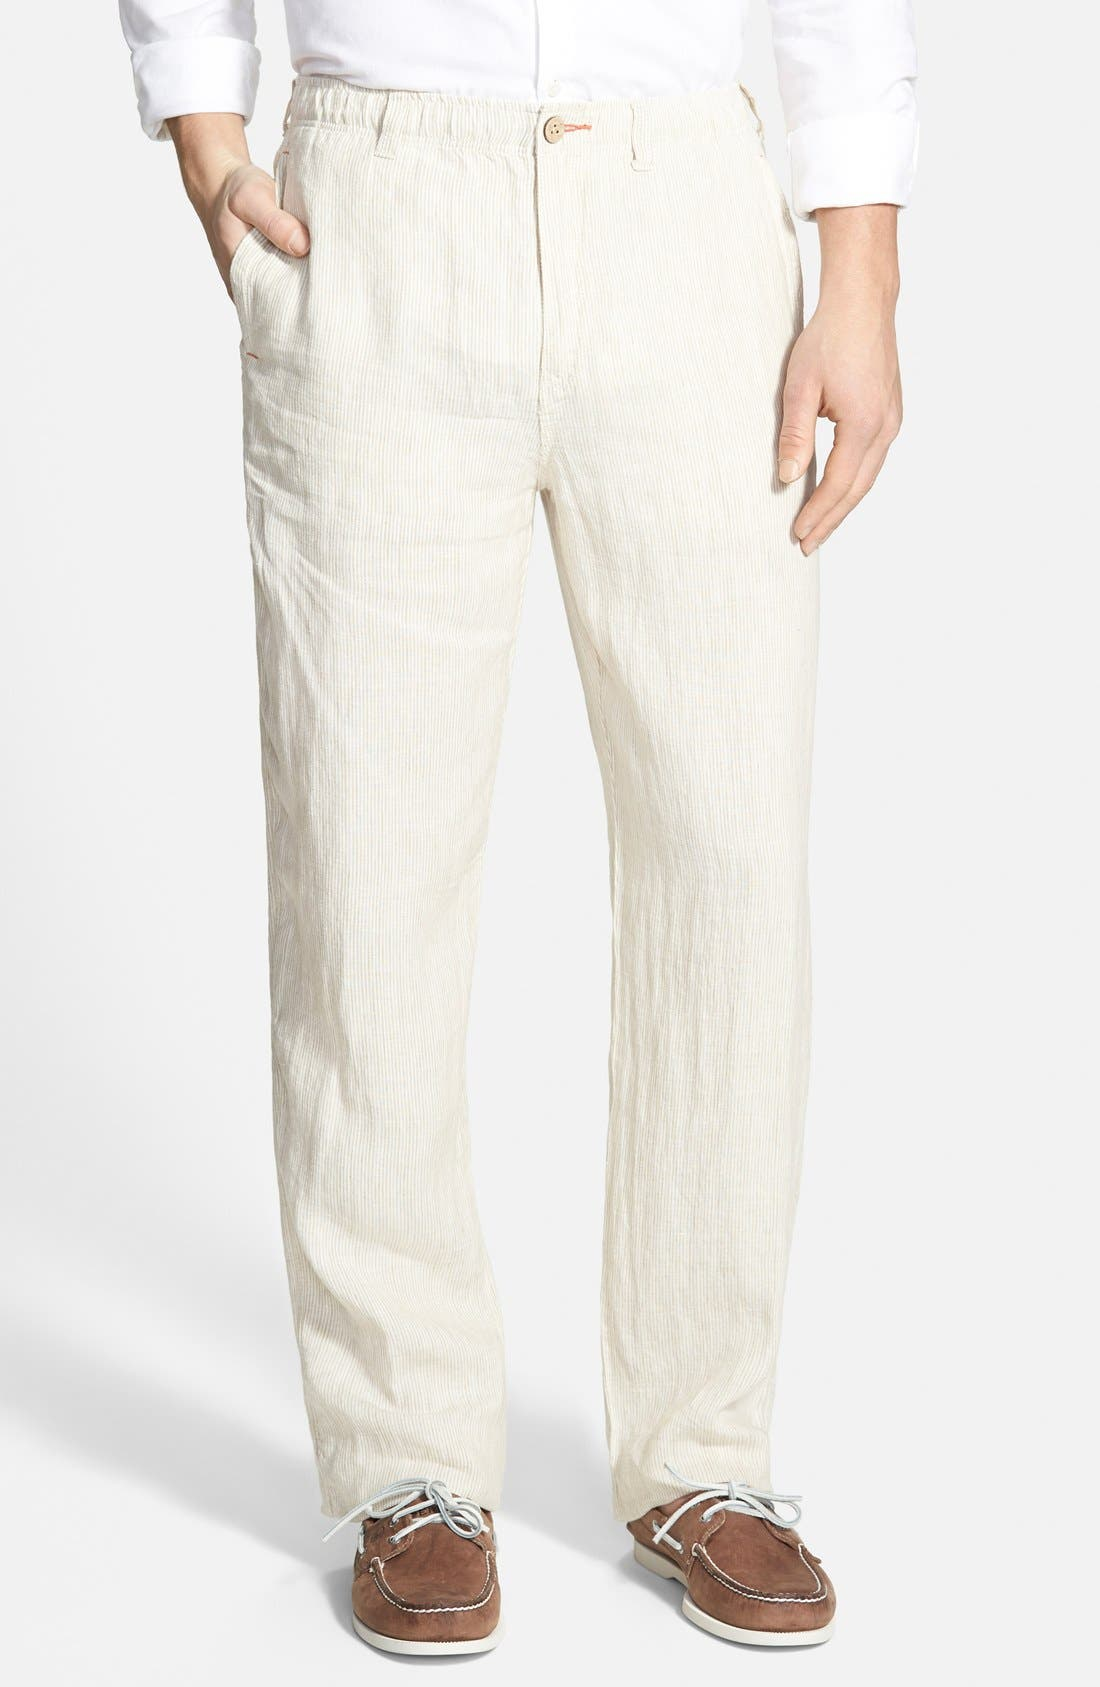 Alternate Image 1 Selected - Tommy Bahama 'Line of the Times' Linen Pants